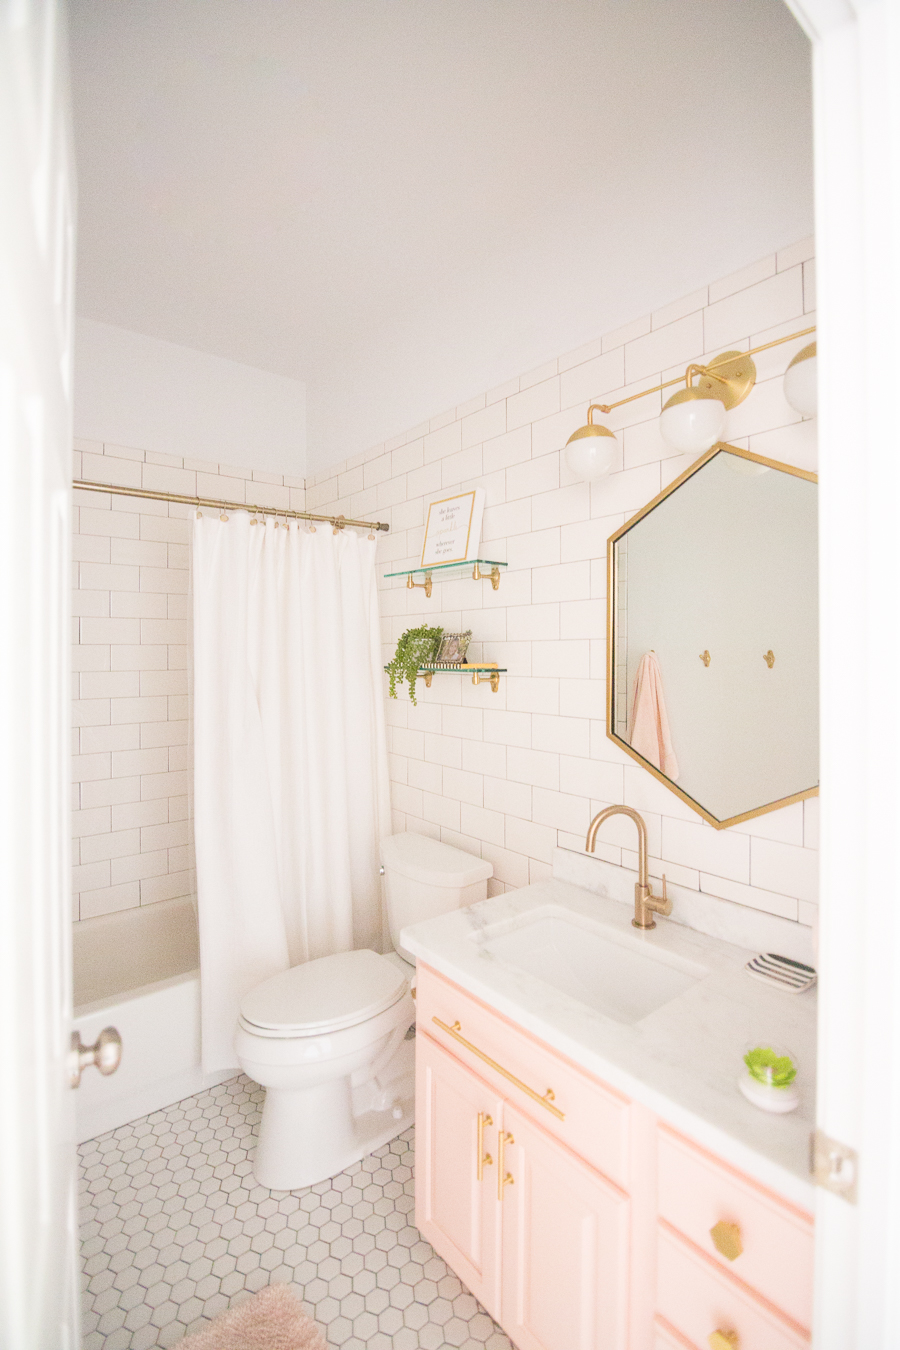 Modern Glam Blush Girls Bathroom Design Gold Hexagon Mirror Blush Cabinets Gold Hardware White Hexagon Floor Glass Shelves Pink Bathroom Cabinets Gold Orb Sconce 4 3 Cc Mike